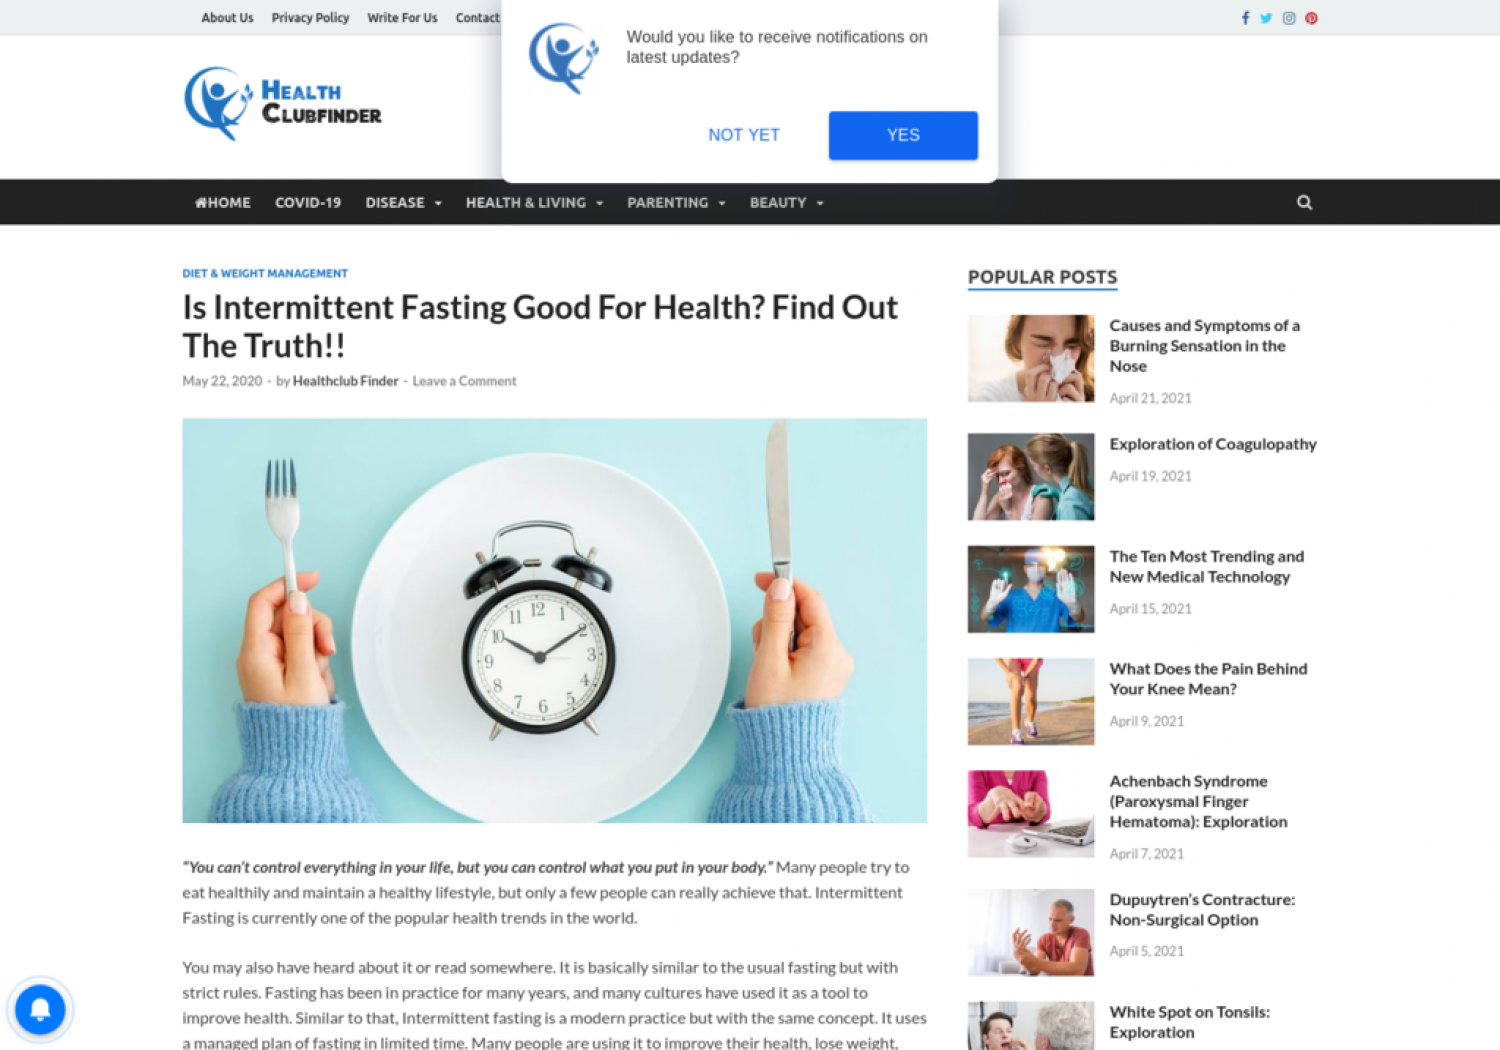 Is Intermittent Fasting Good For Health? Infographic